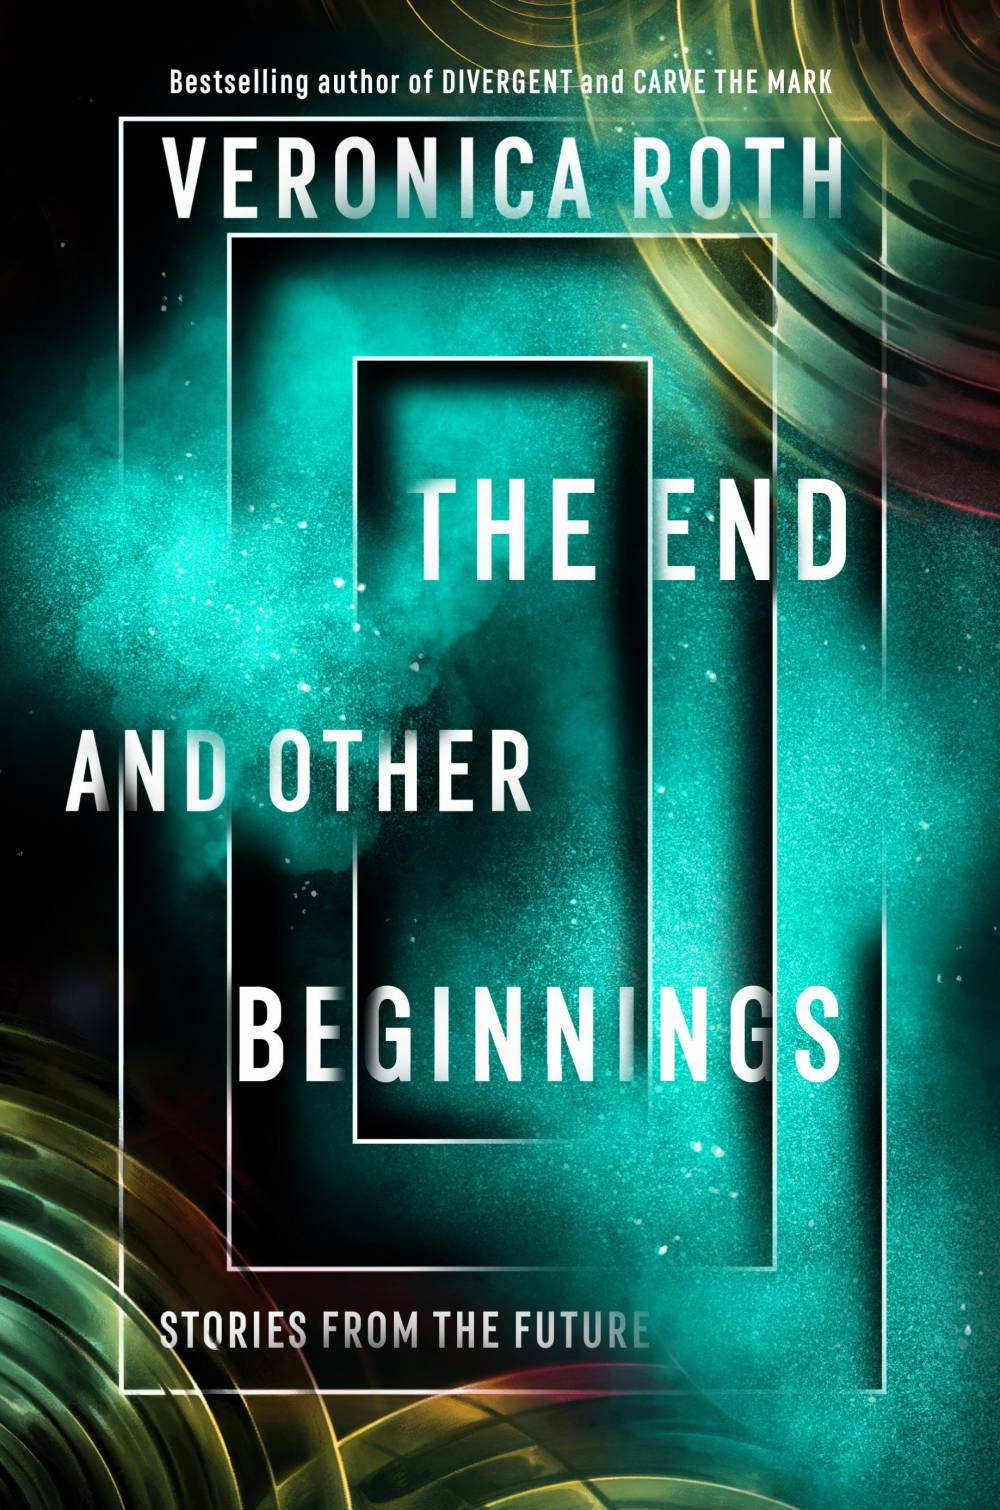 'The End and Other Beginnings: Stories from the Future' by Veronica Roth